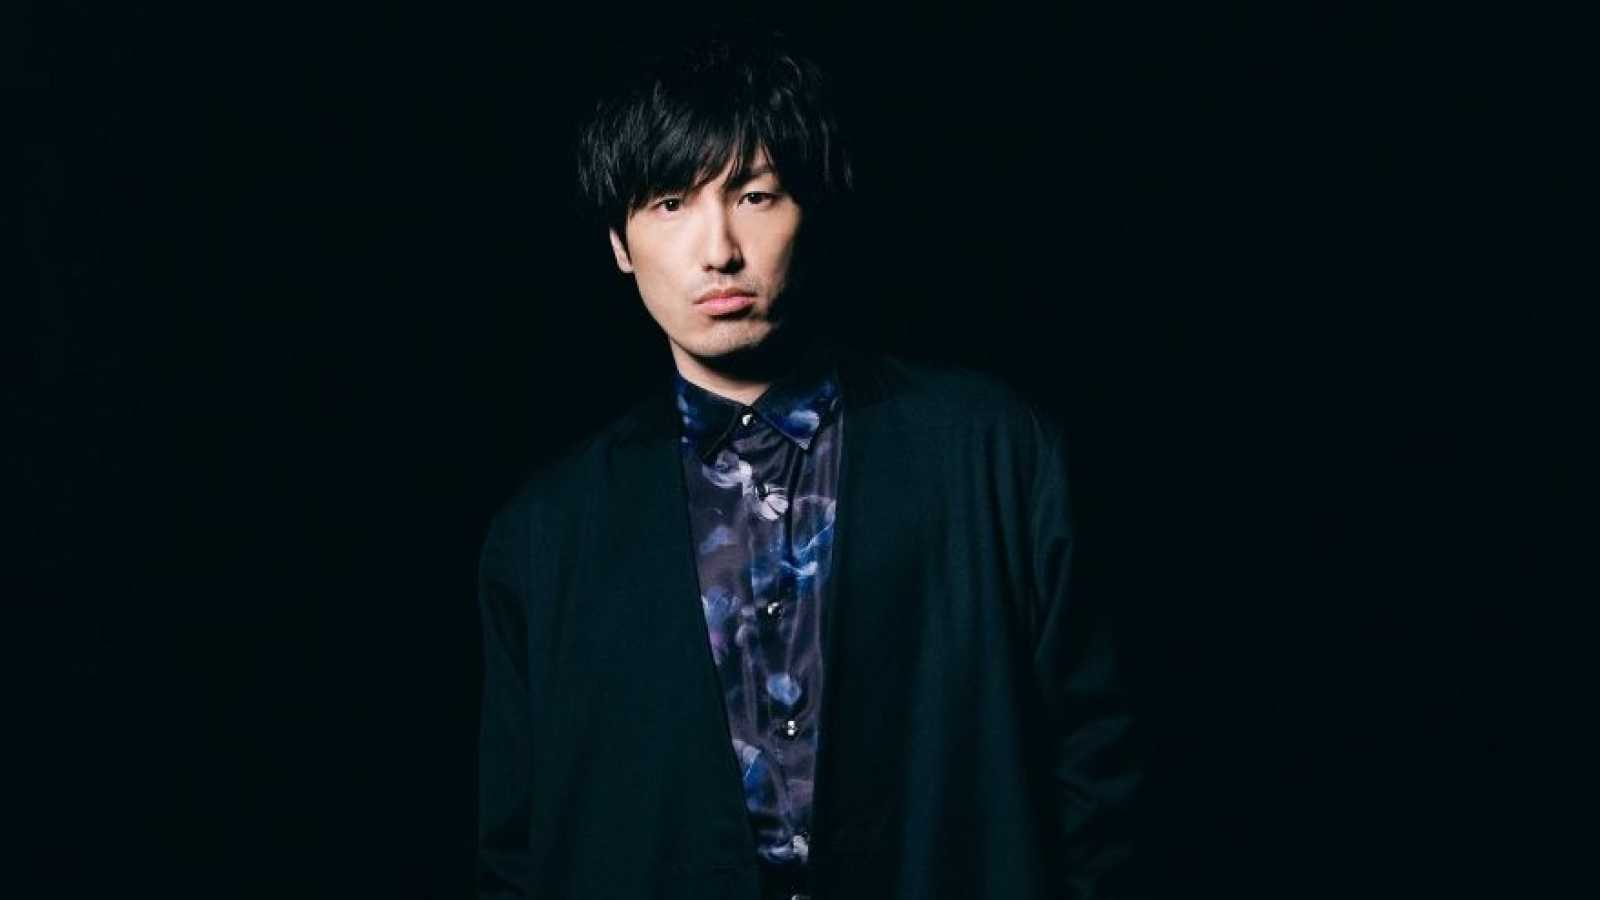 Nowy singiel SawanoHiroyuki[nZk] © Sony Music Entertainment (Japan) Inc. All rights reserved.